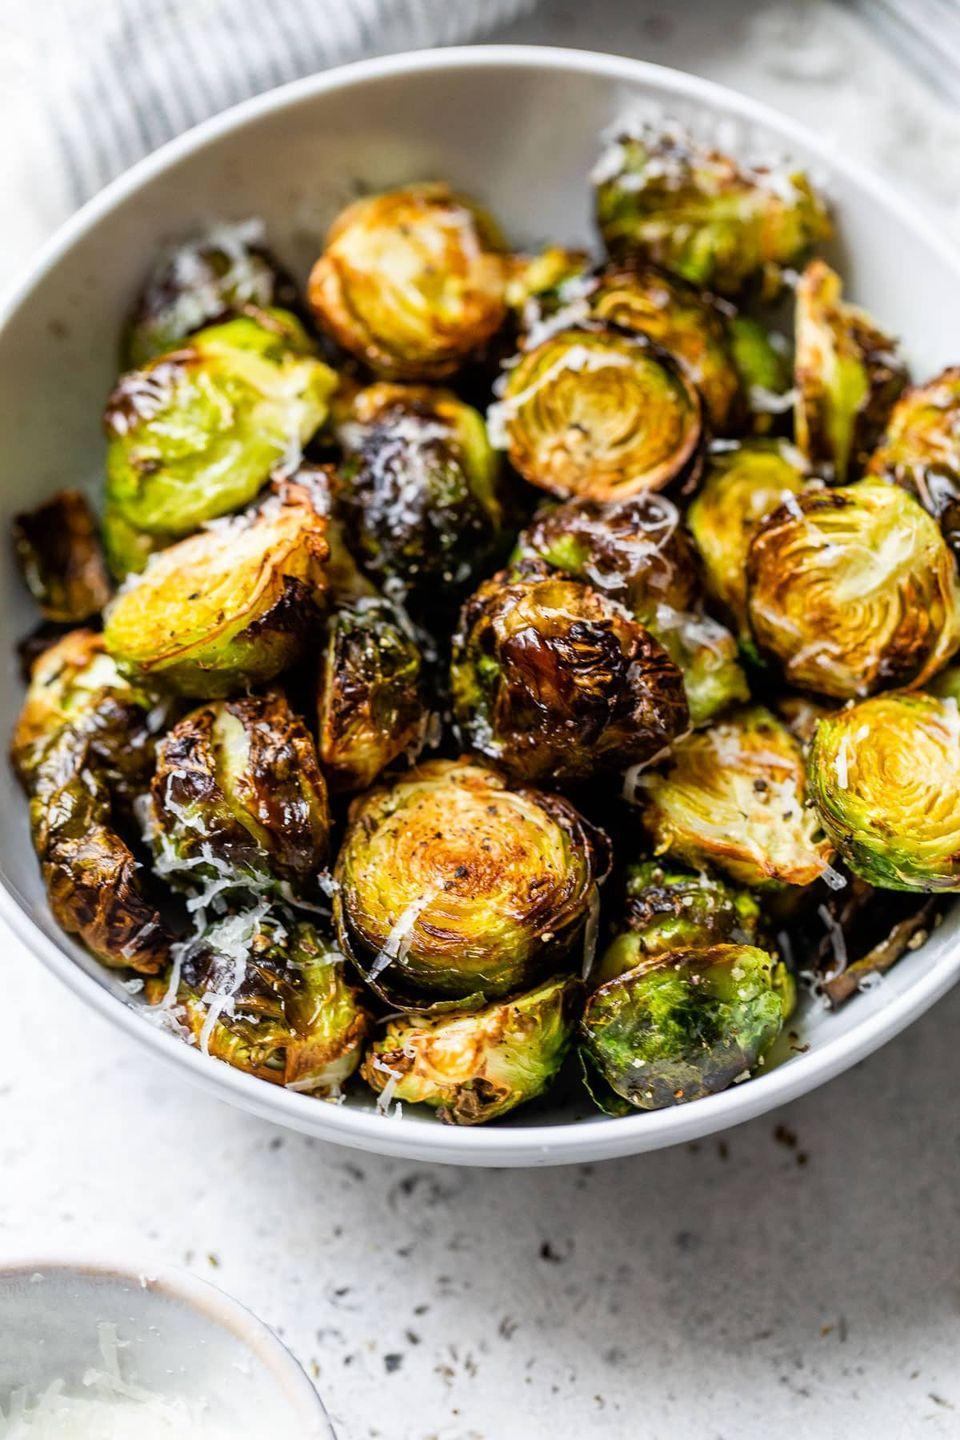 """<p>Is there anything an air fryer can't do!? These simple sprouts crisp up beautifully in just 12 minutes.</p><p><strong>Get the recipe from <a href=""""https://www.wellplated.com/air-fryer-brussels-sprouts/"""" rel=""""nofollow noopener"""" target=""""_blank"""" data-ylk=""""slk:Well Plated by Erin"""" class=""""link rapid-noclick-resp"""">Well Plated by Erin</a>.</strong></p><p><strong><a class=""""link rapid-noclick-resp"""" href=""""https://go.redirectingat.com?id=74968X1596630&url=https%3A%2F%2Fwww.walmart.com%2Fip%2FNinja-5-5-Quart-Air-Fryer-Max-XL-AF161-in-Black-and-Silver%2F526756471&sref=https%3A%2F%2Fwww.thepioneerwoman.com%2Ffood-cooking%2Fmeals-menus%2Fg37328783%2Fbrussels-sprouts-recipes%2F"""" rel=""""nofollow noopener"""" target=""""_blank"""" data-ylk=""""slk:SHOP AIR FRYERS"""">SHOP AIR FRYERS</a><br></strong></p>"""